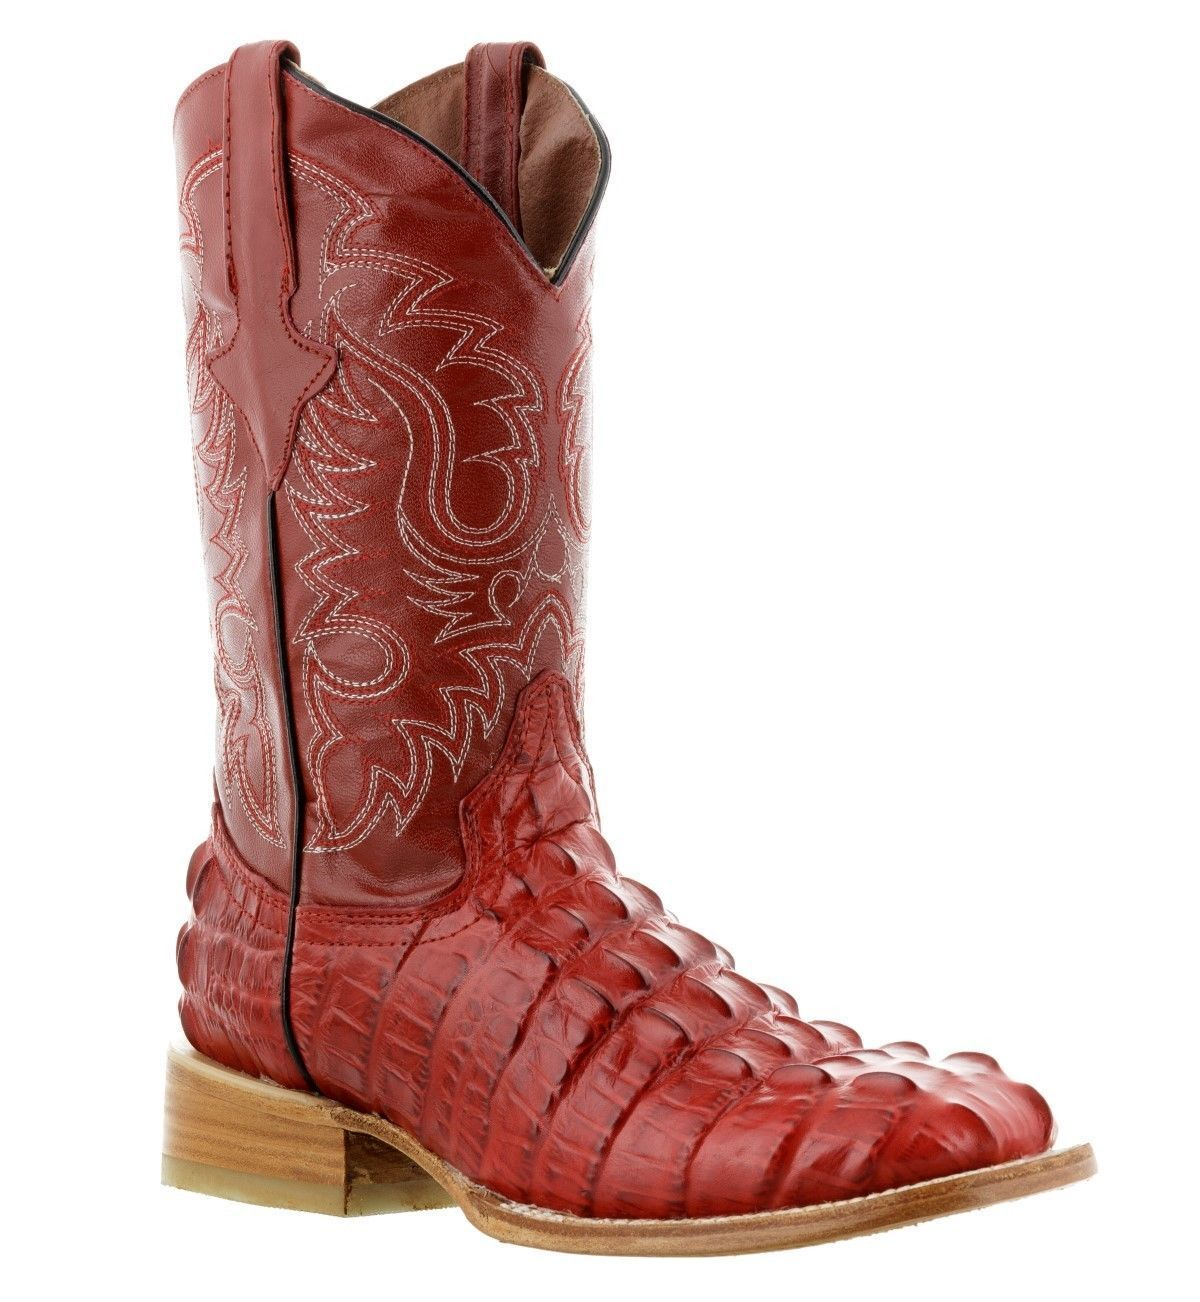 Men's New TW Crocodile Alligator Tail Leather Cowboy Western Square Boots Red